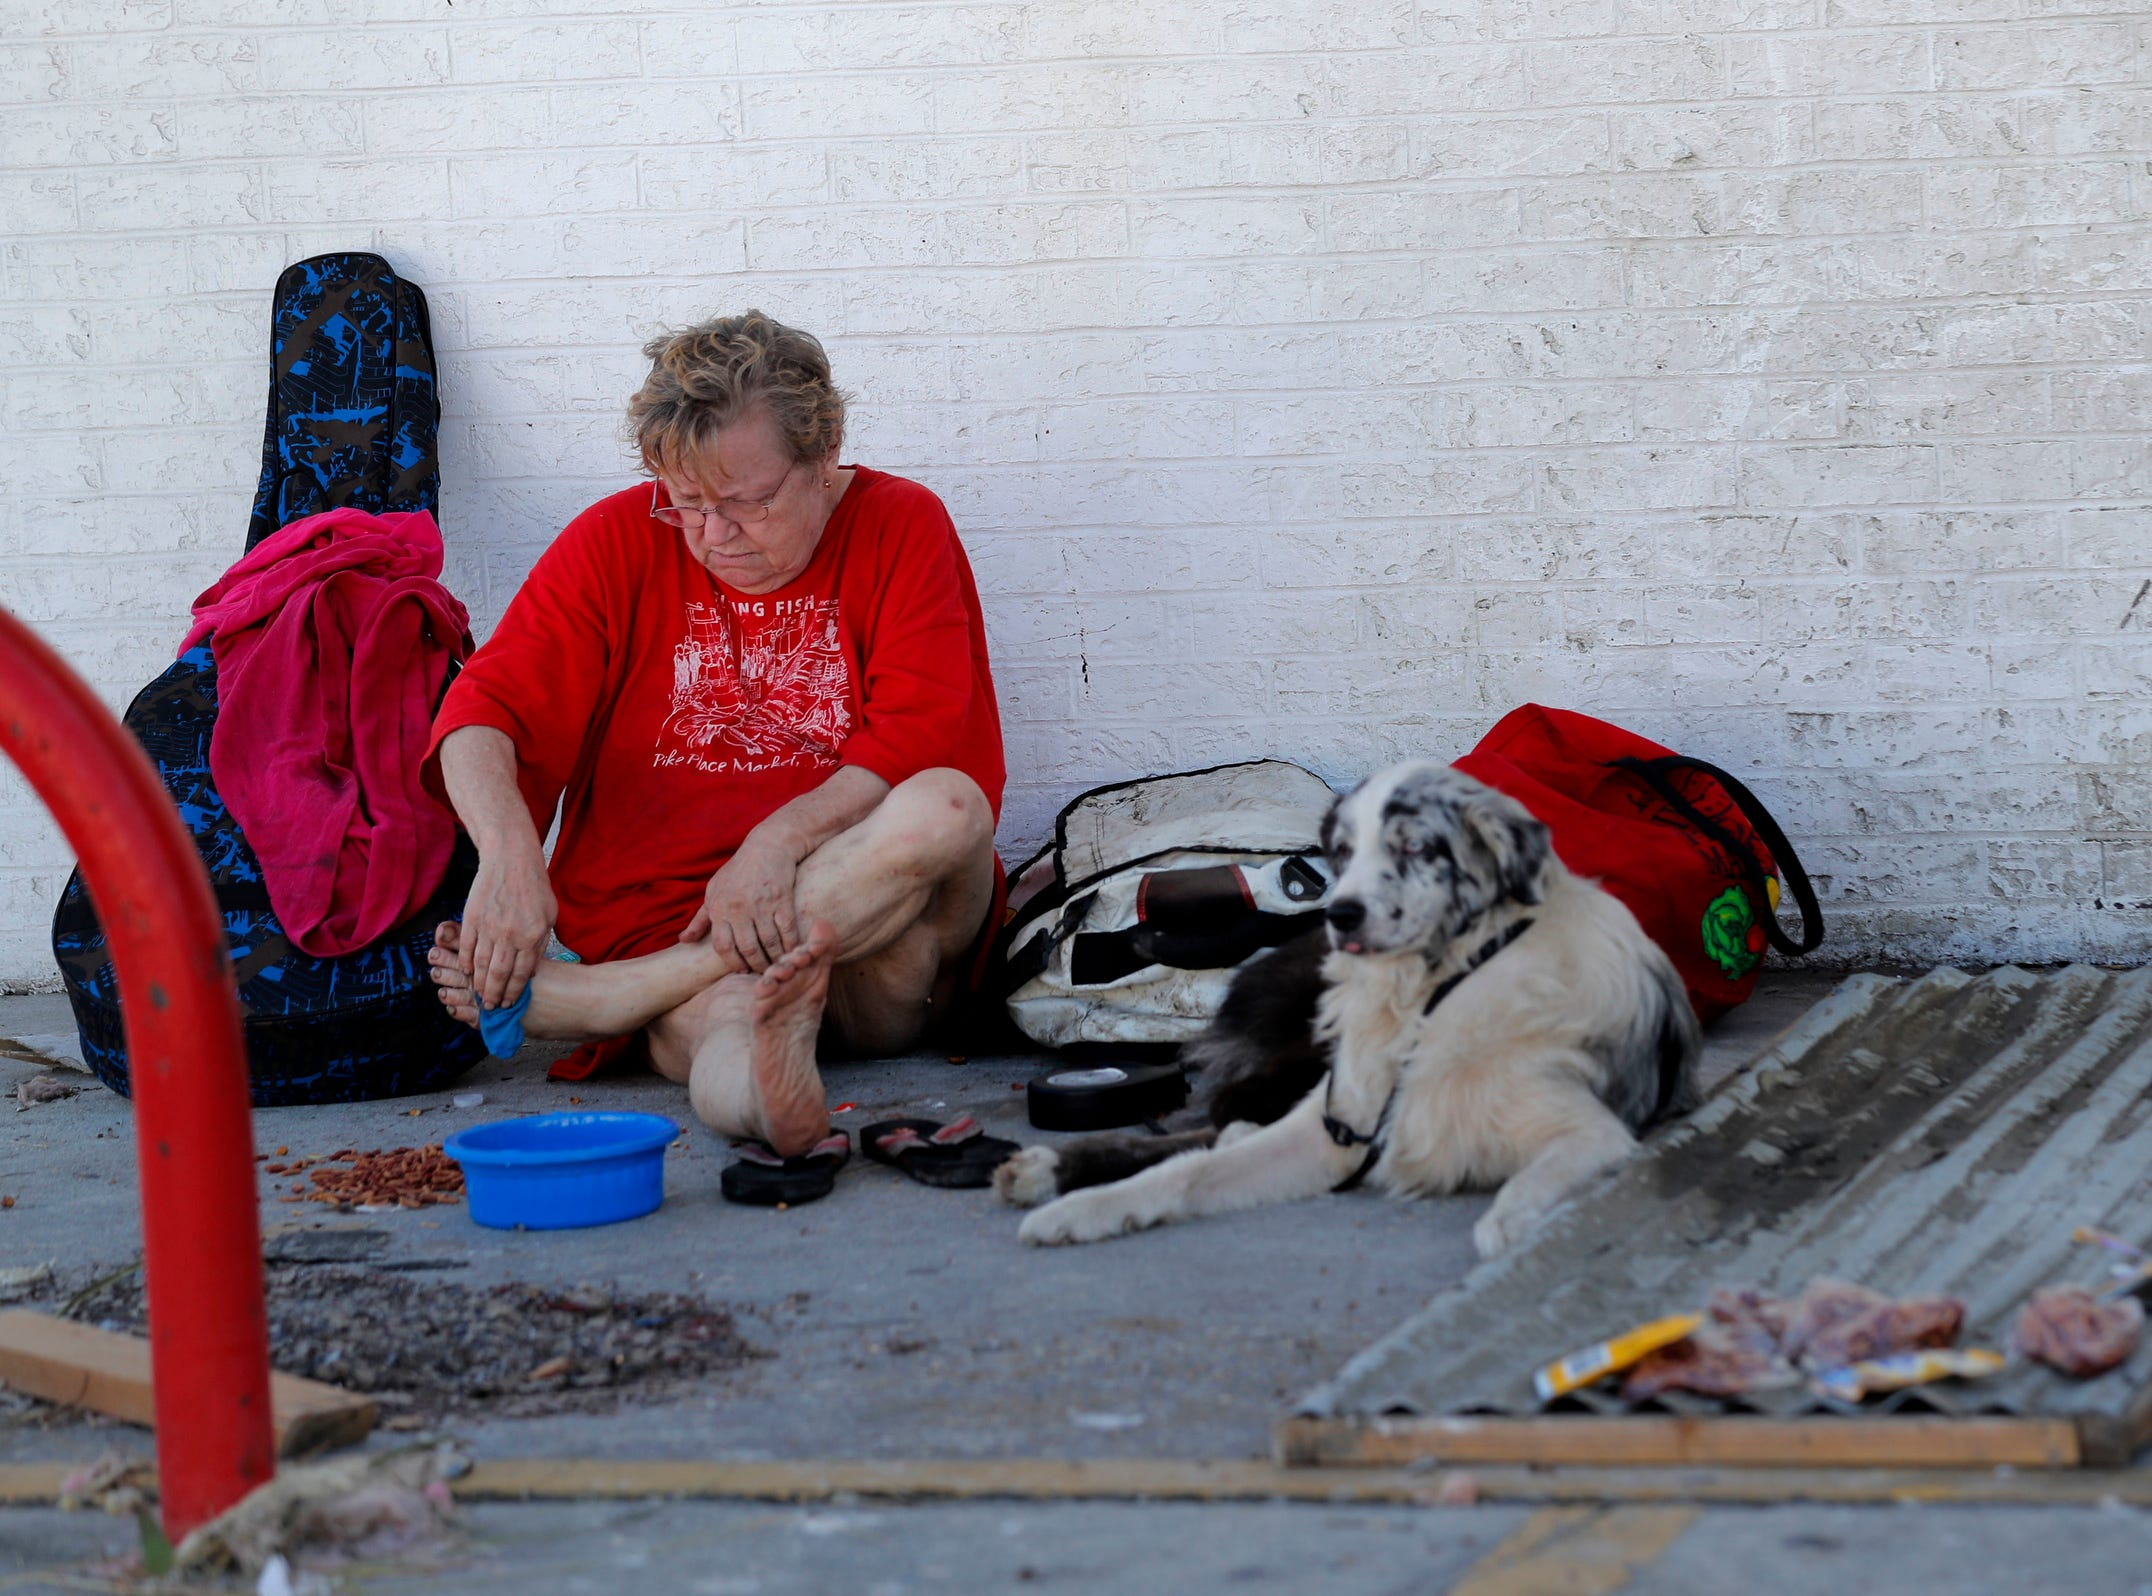 Robin Retzloff who rode out Hurricane Michael in her now destroyed home, sits in front of a heavily damaged convenience store with her dog Markie, the aftermath of Hurricane Michael in Mexico Beach, Fla., on Oct. 11, 2018. Her husband is in a hospital and she has not been able to reach him, so she has nowhere to go.